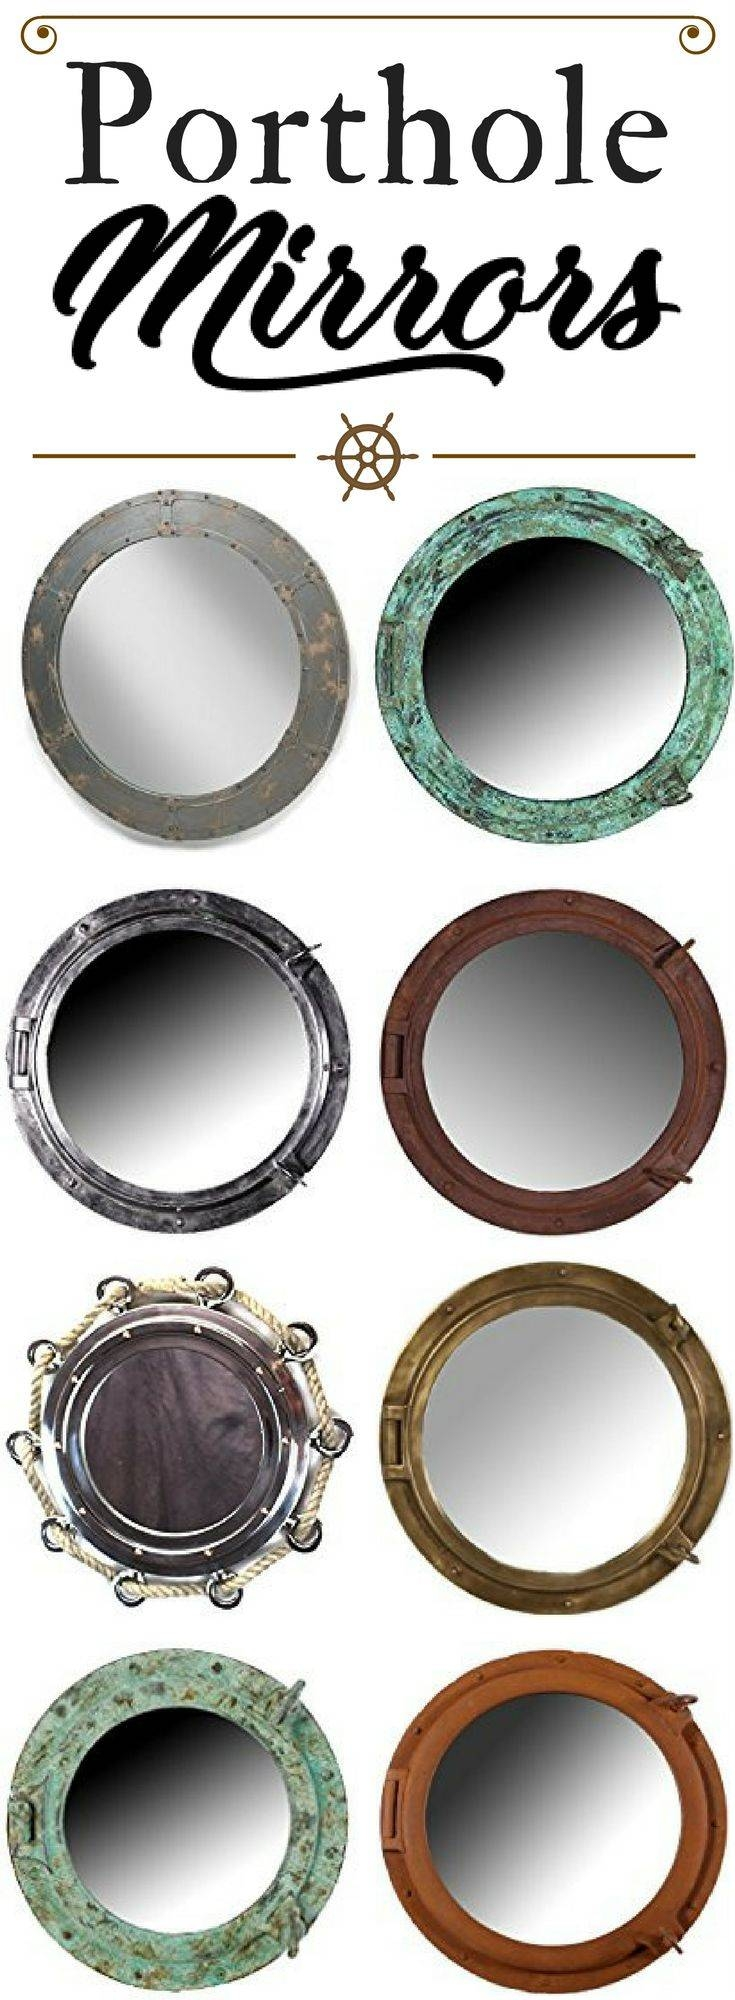 25+ Best Porthole Mirror Ideas On Pinterest | Nautical Mirror For Chrome Porthole Mirrors (View 1 of 25)